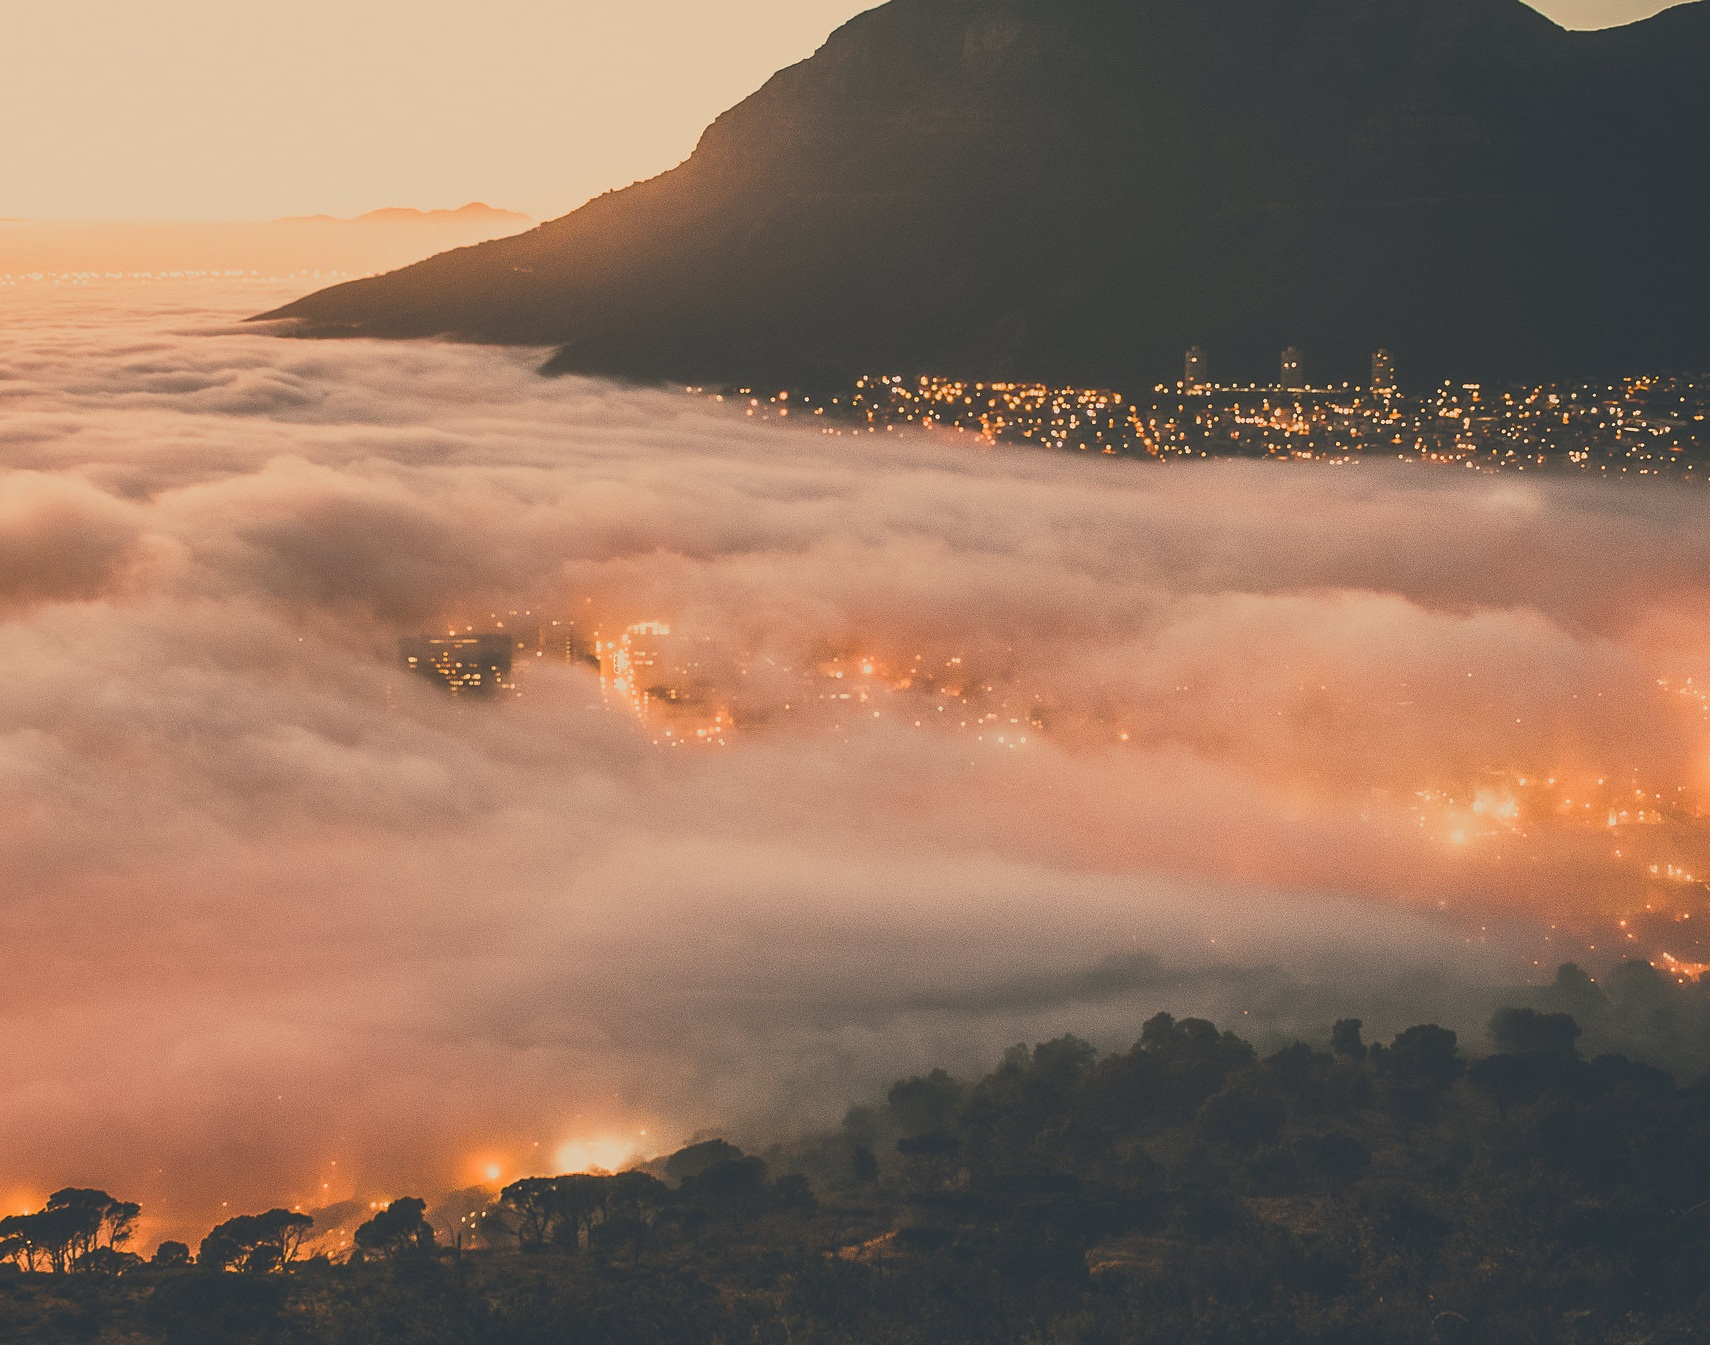 Our Practice - We work from the leafy suburbs outside of sunny Cape Town, South Africa with clients from all over the globe. As we sit so close to GMT, we are able to work with clients from everywhere, accommodating them through Skype, Slack, email and Facebook.